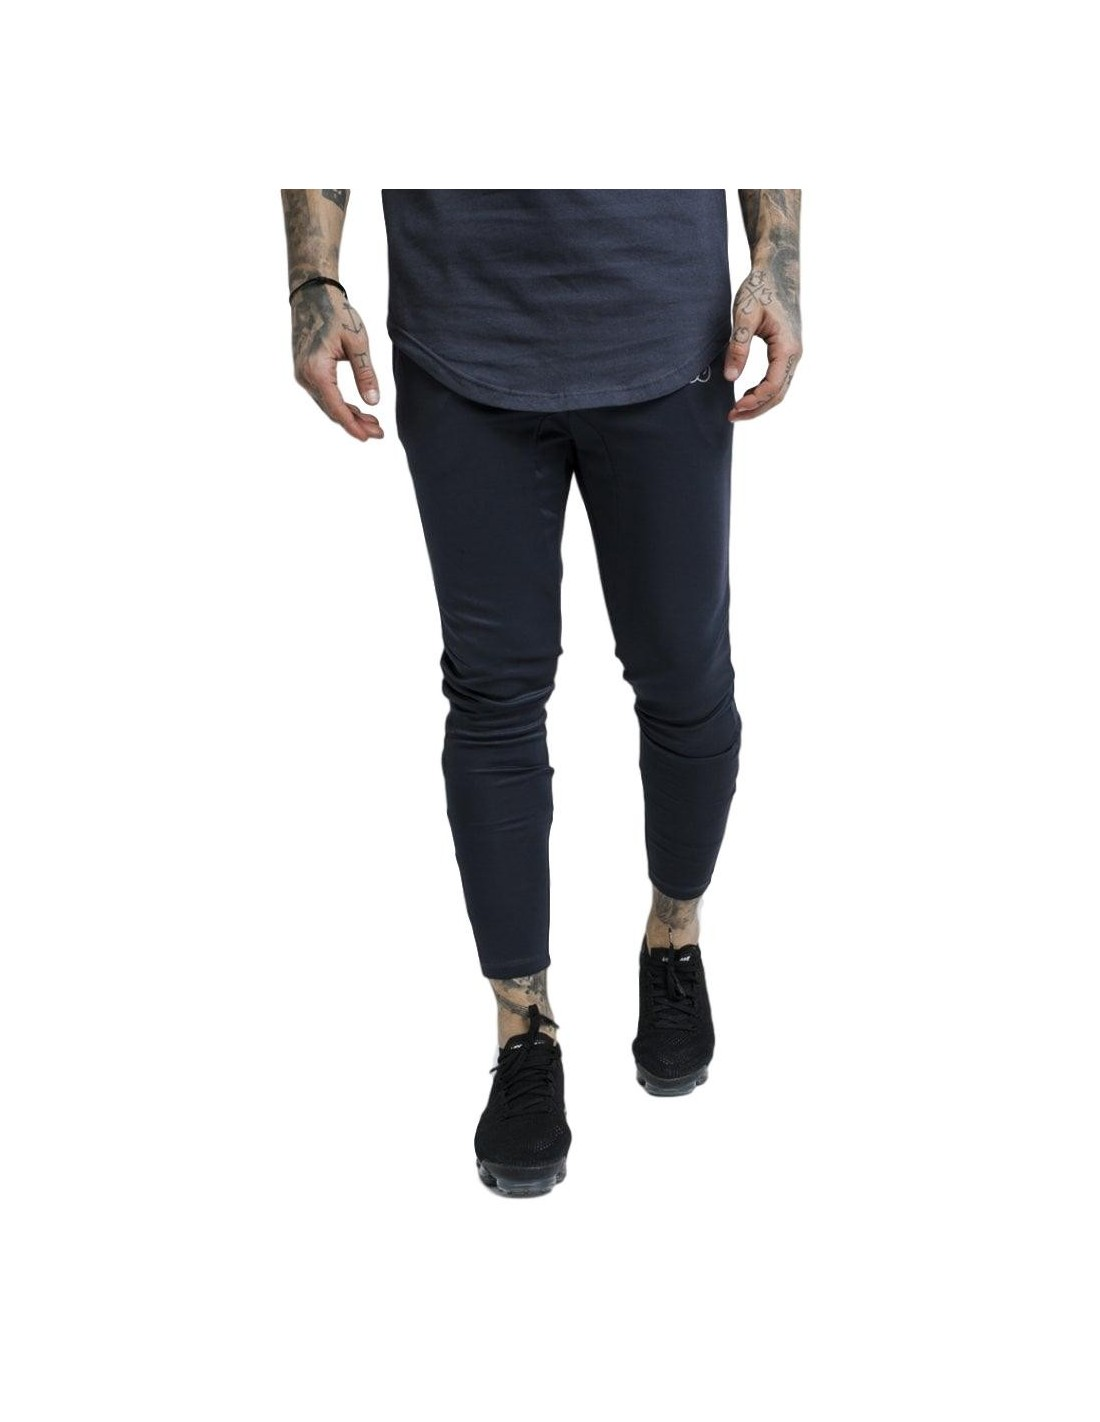 Pantalon SikSilk Athlete Tracked Anthracite